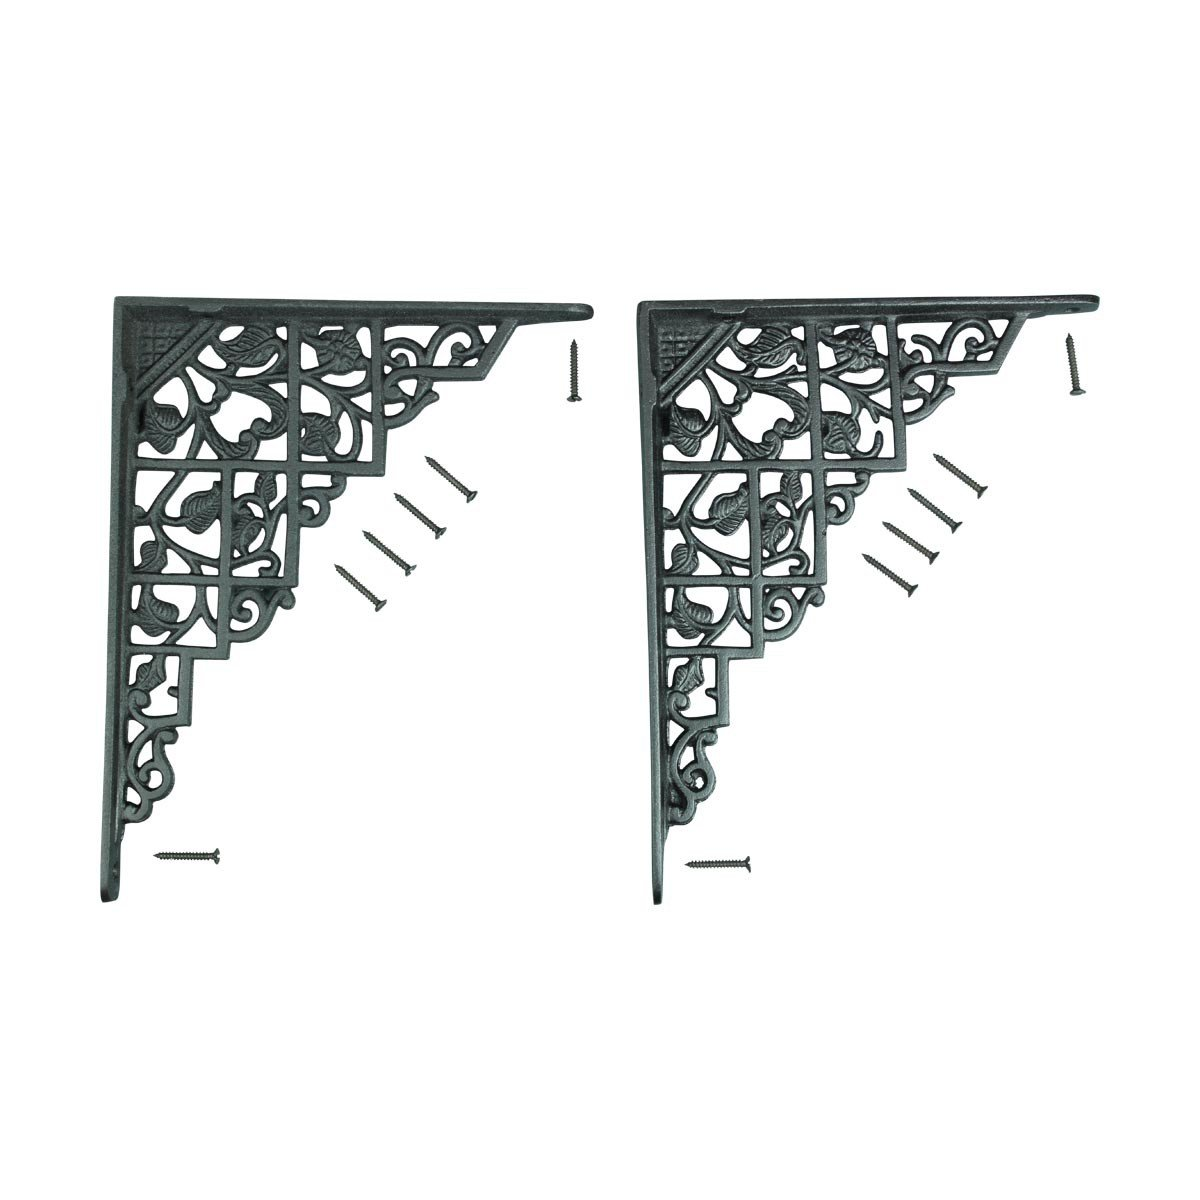 Pair Shelf Brackets Black Aluminum 7'' X 8 3/4'' | Renovator's Supply